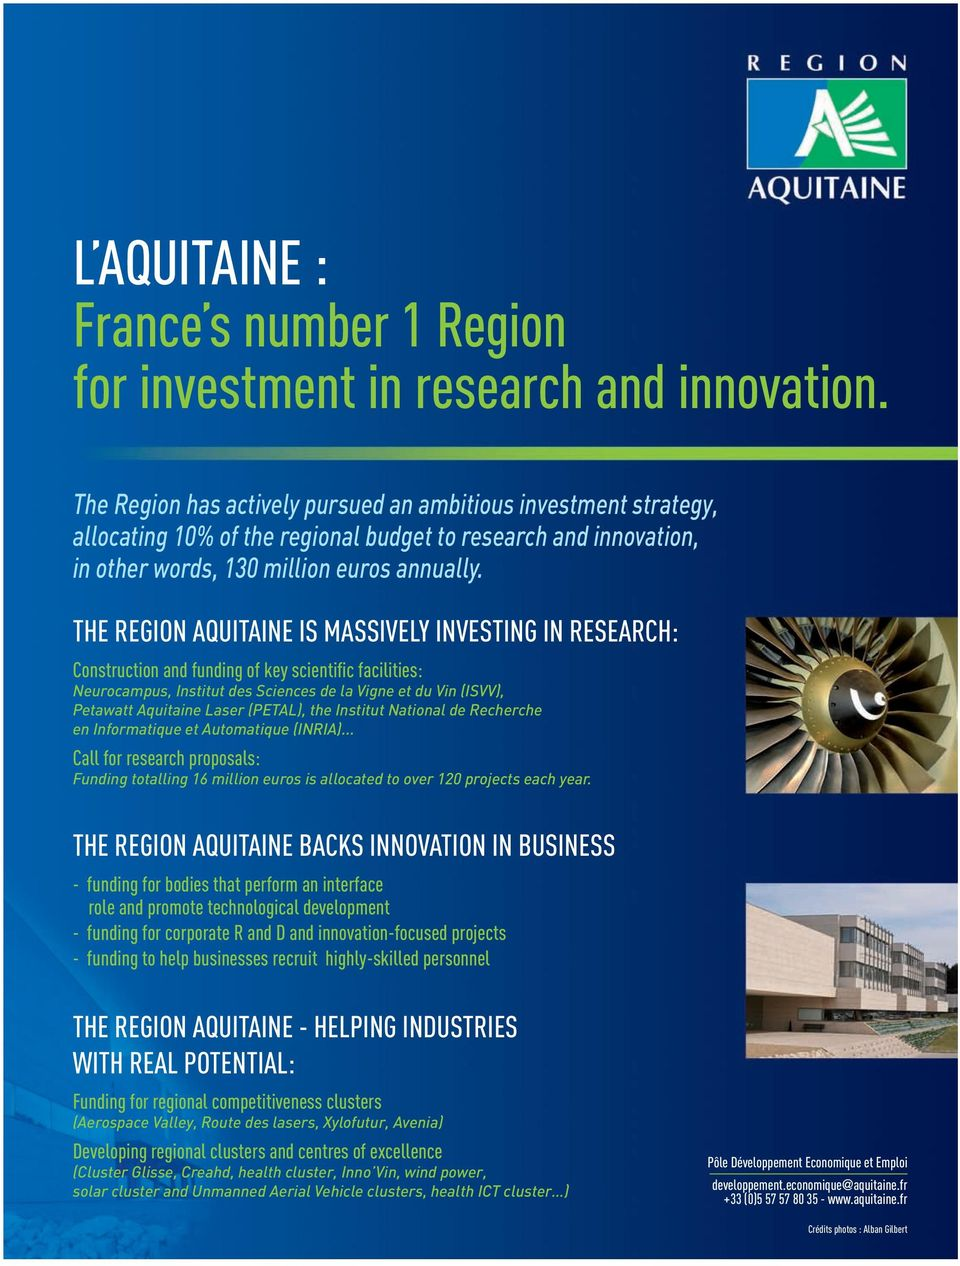 THE REGION AQUITAINE IS MASSIVELY INVESTING IN RESEARCH: Construction and funding of key scientific facilities: Neurocampus, Institut des Sciences de la Vigne et du Vin (ISVV), Petawatt Aquitaine